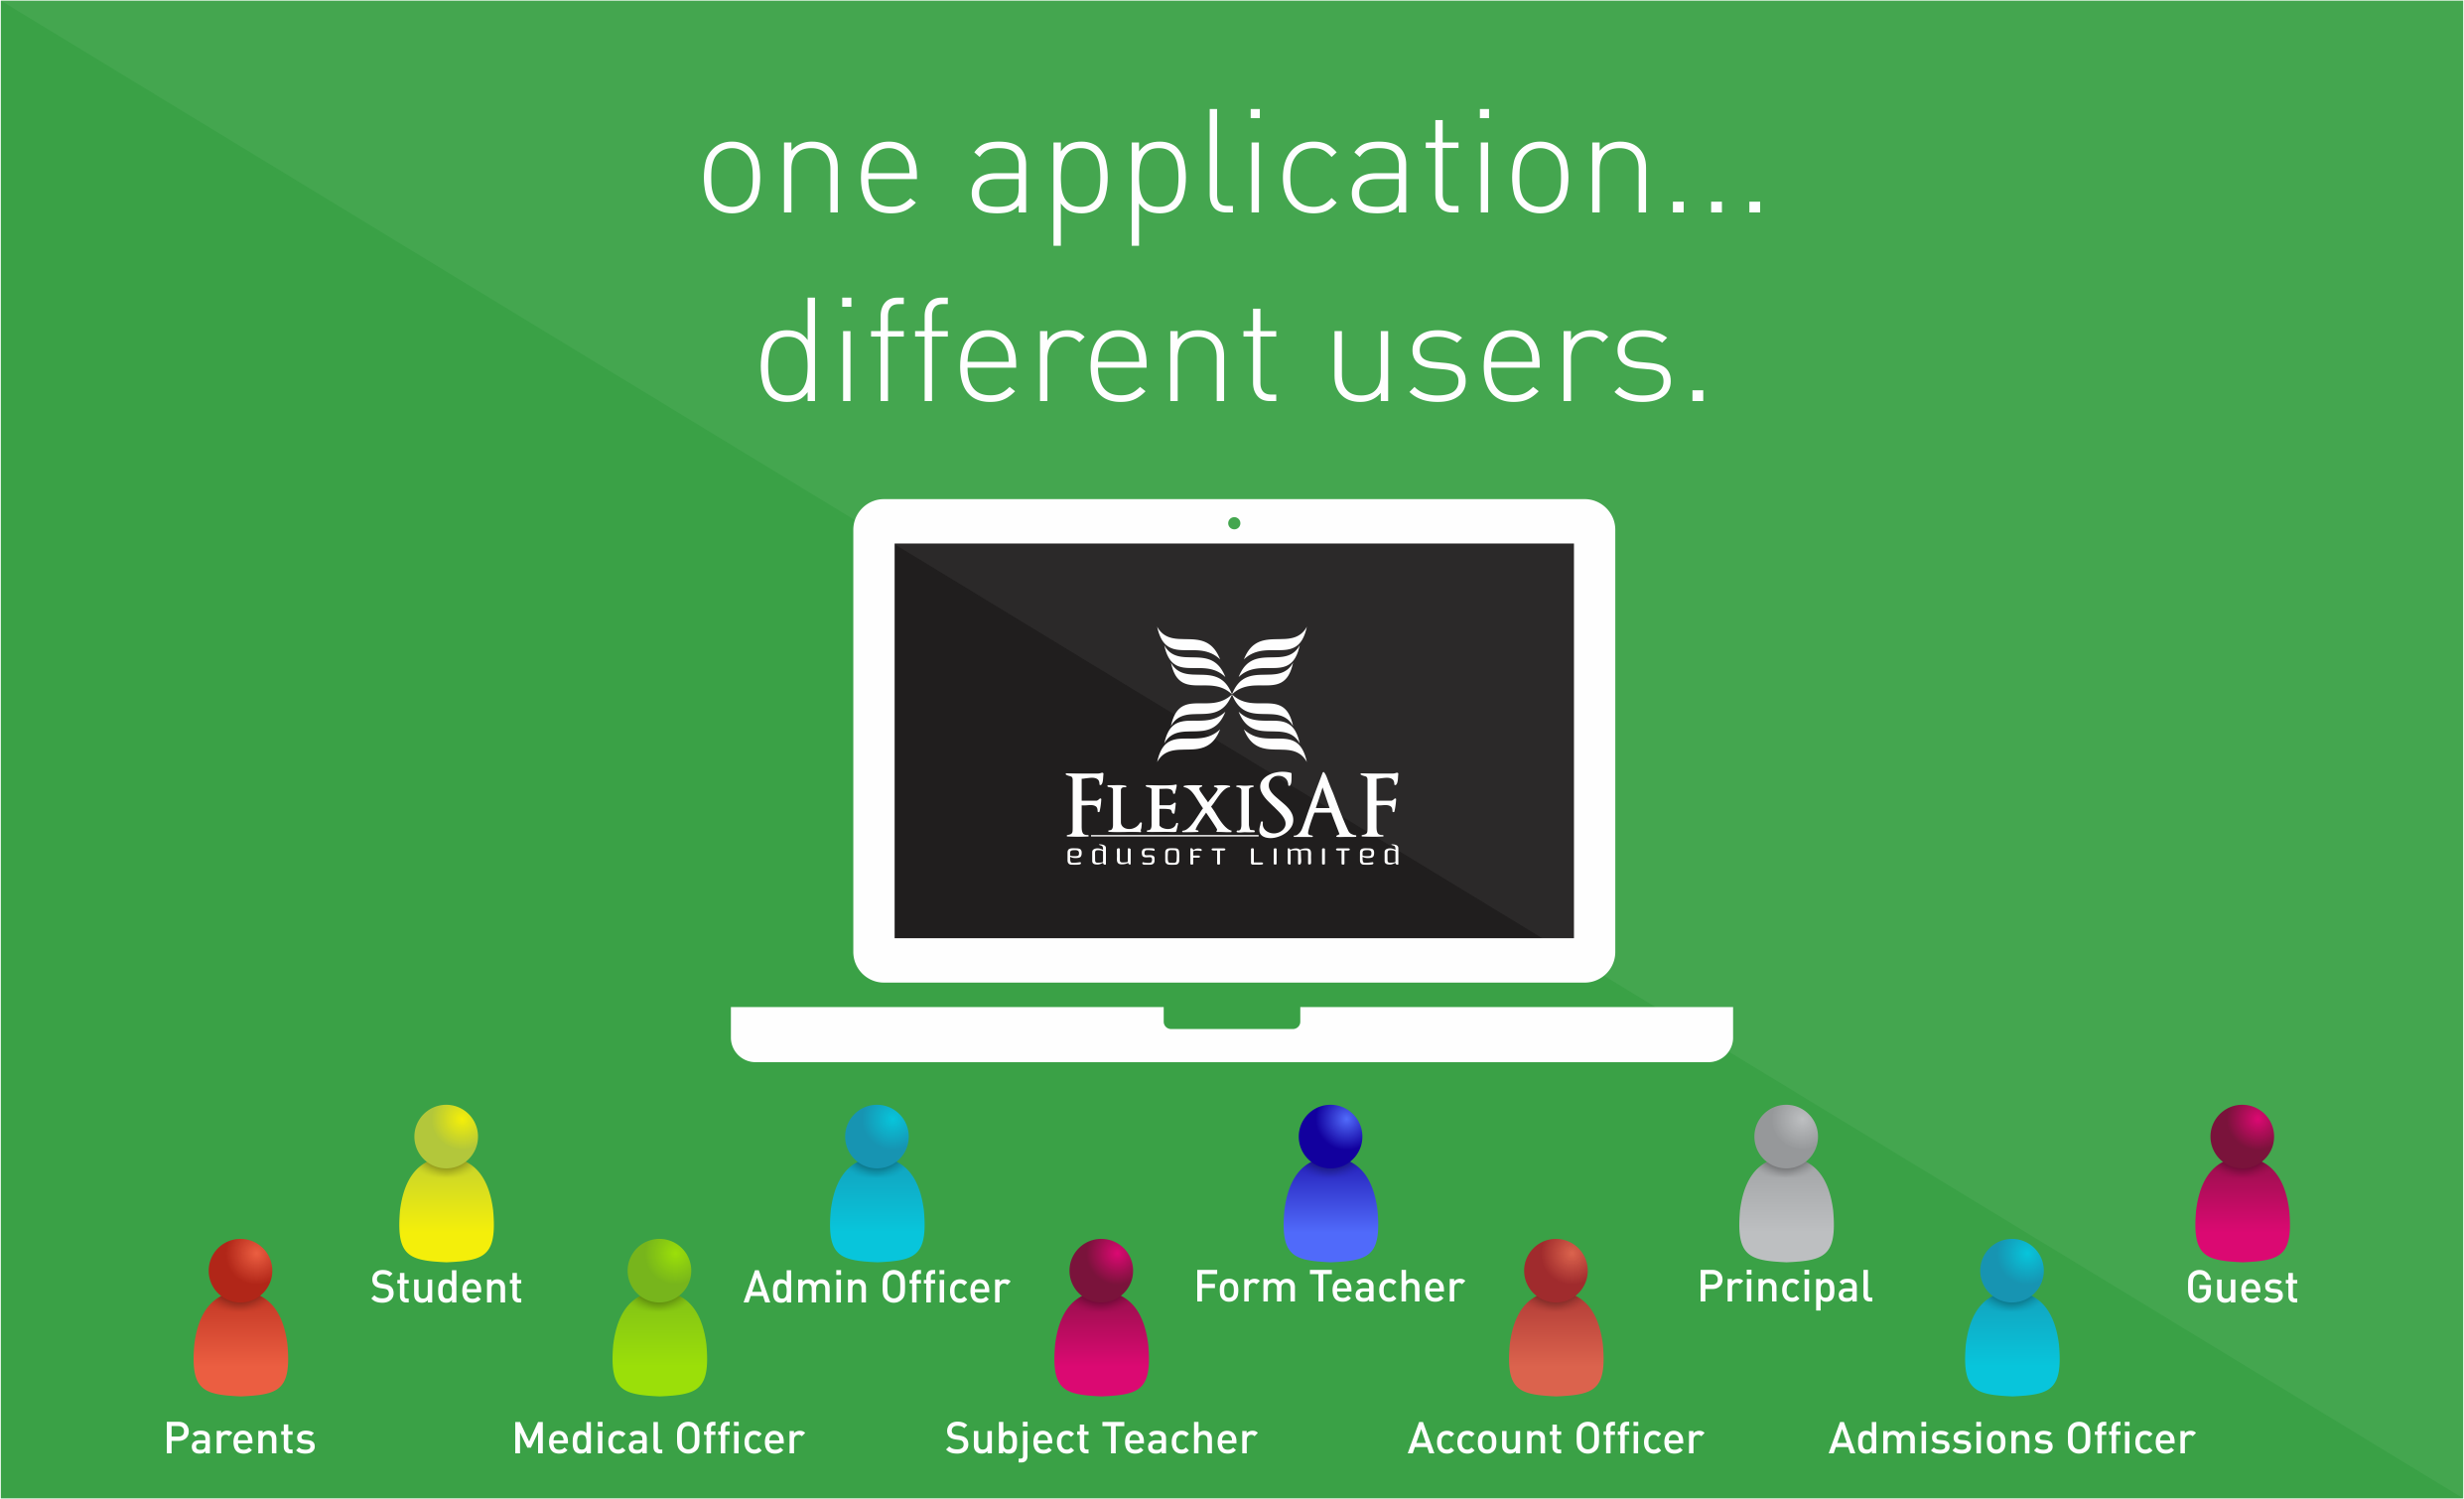 flexisaf doodle - one app, different users